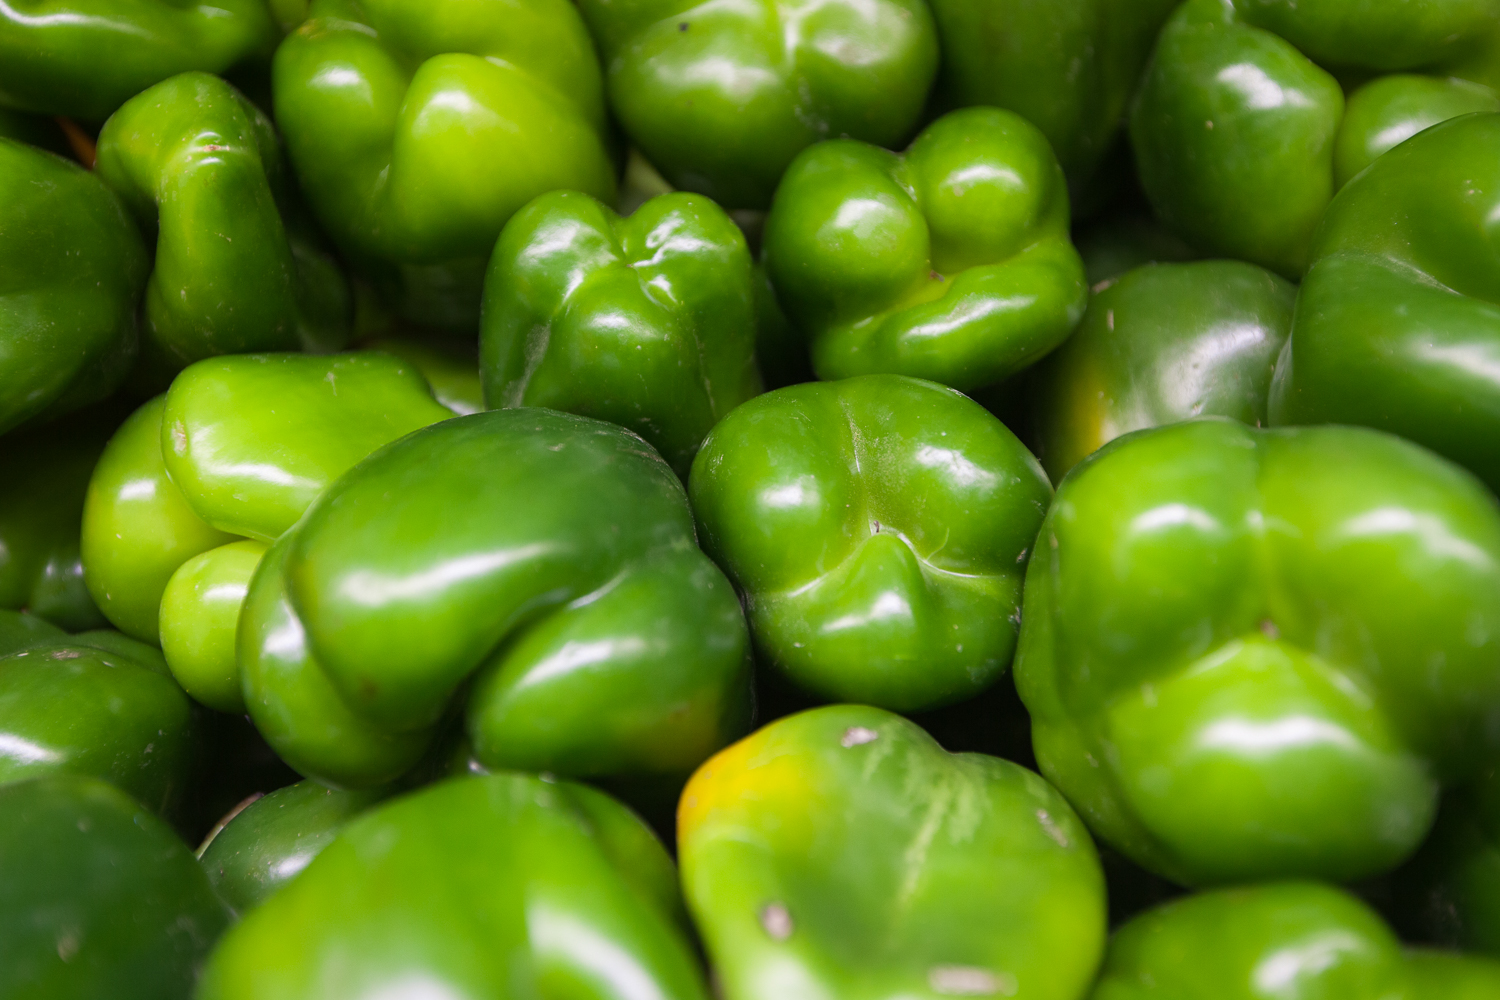 green-bell-peppers-produce-department-mana-foods.jpg